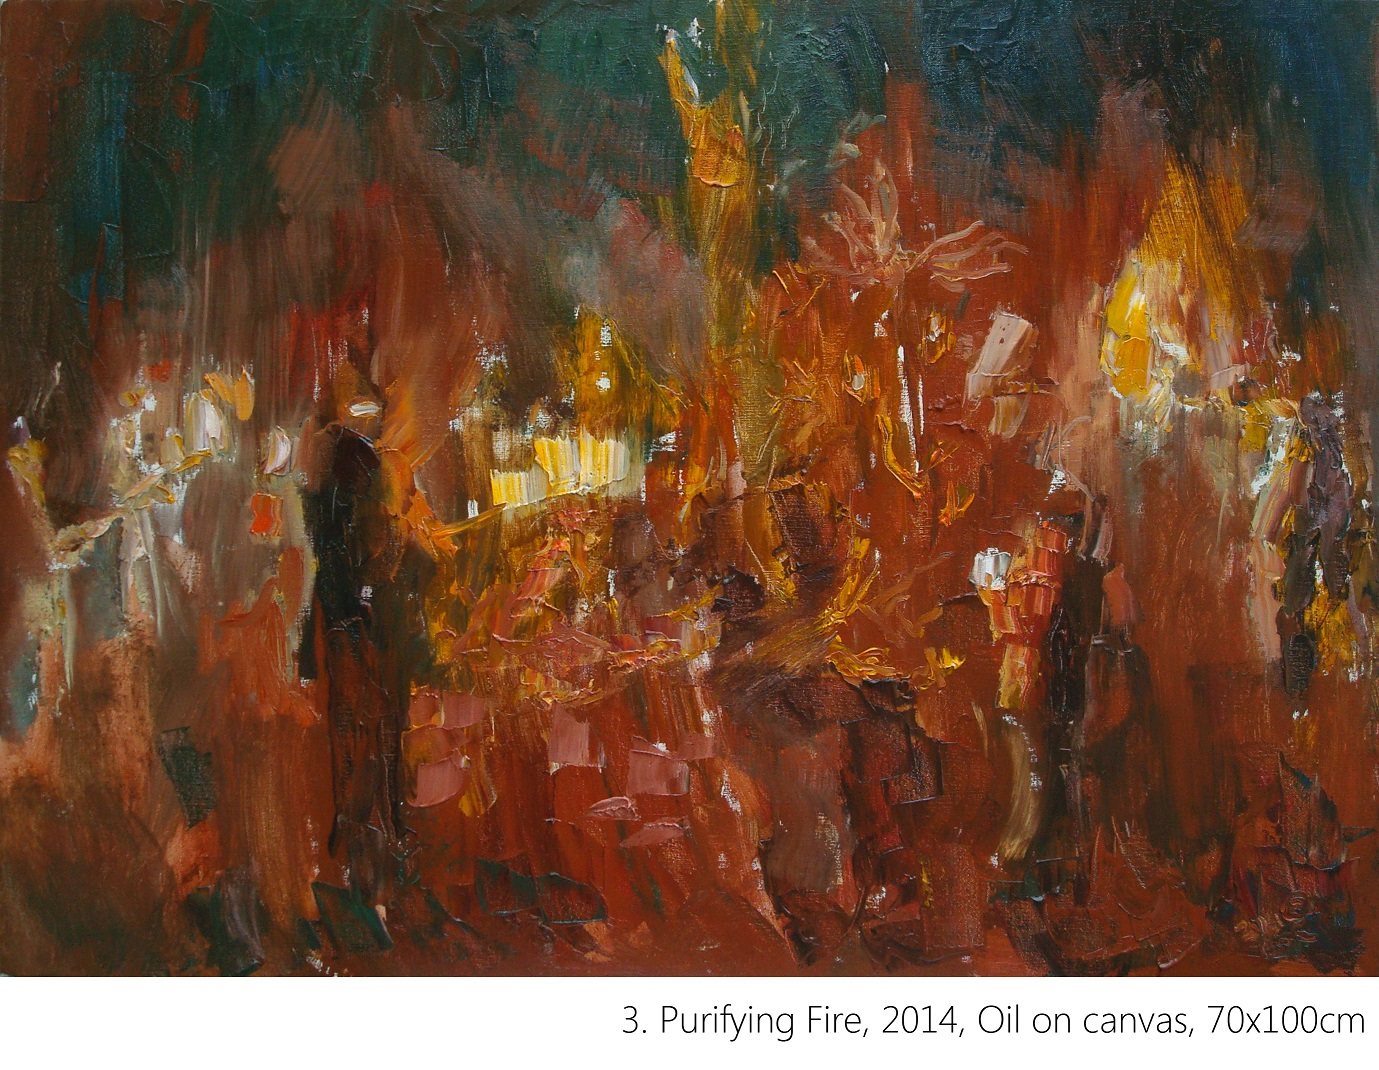 3. Purifying Fire, 2014, Oil on canvas, 70x100cm